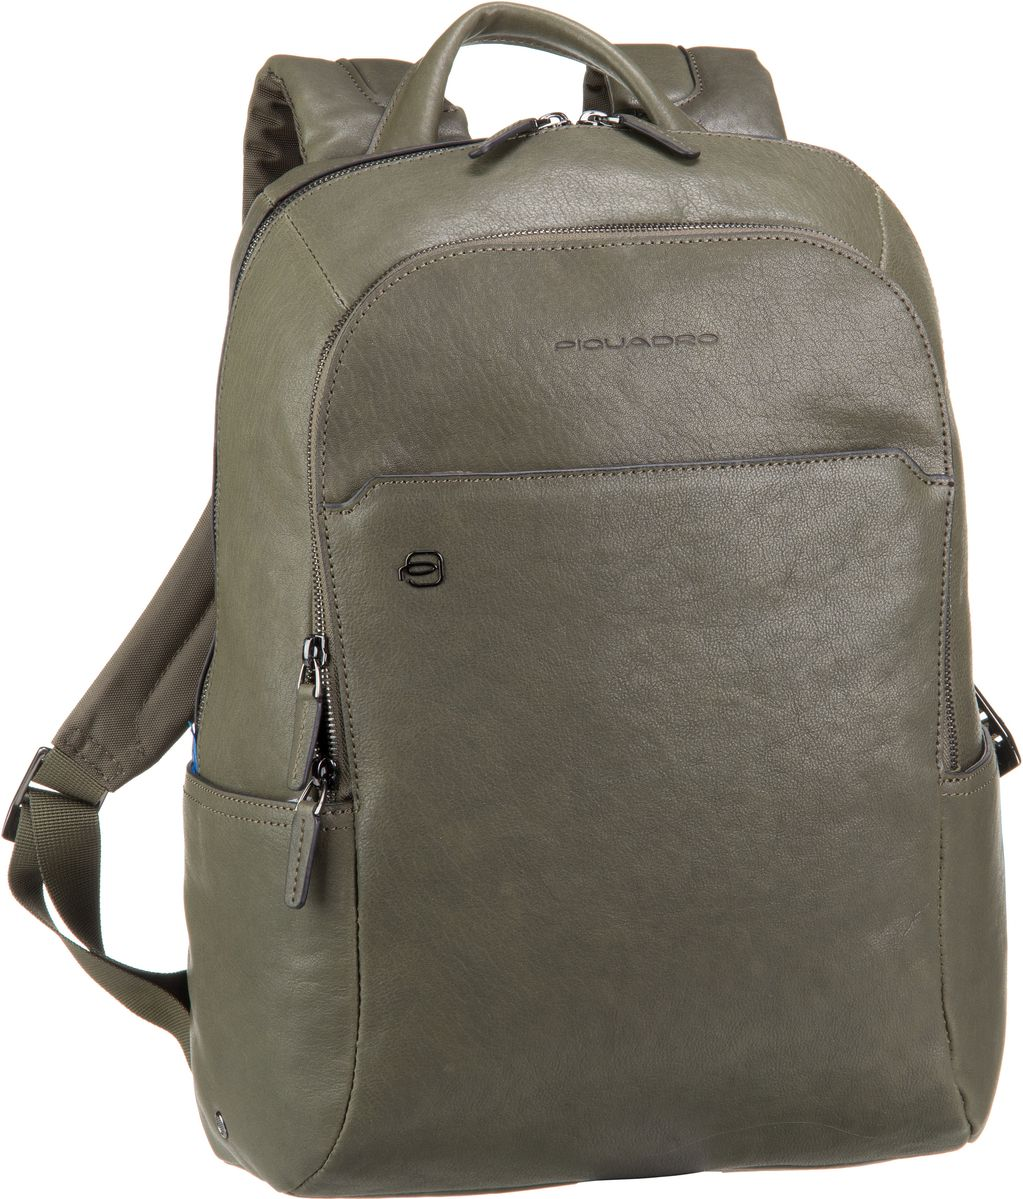 Laptoprucksack Black Square 3214 Connequ Verde Oliva